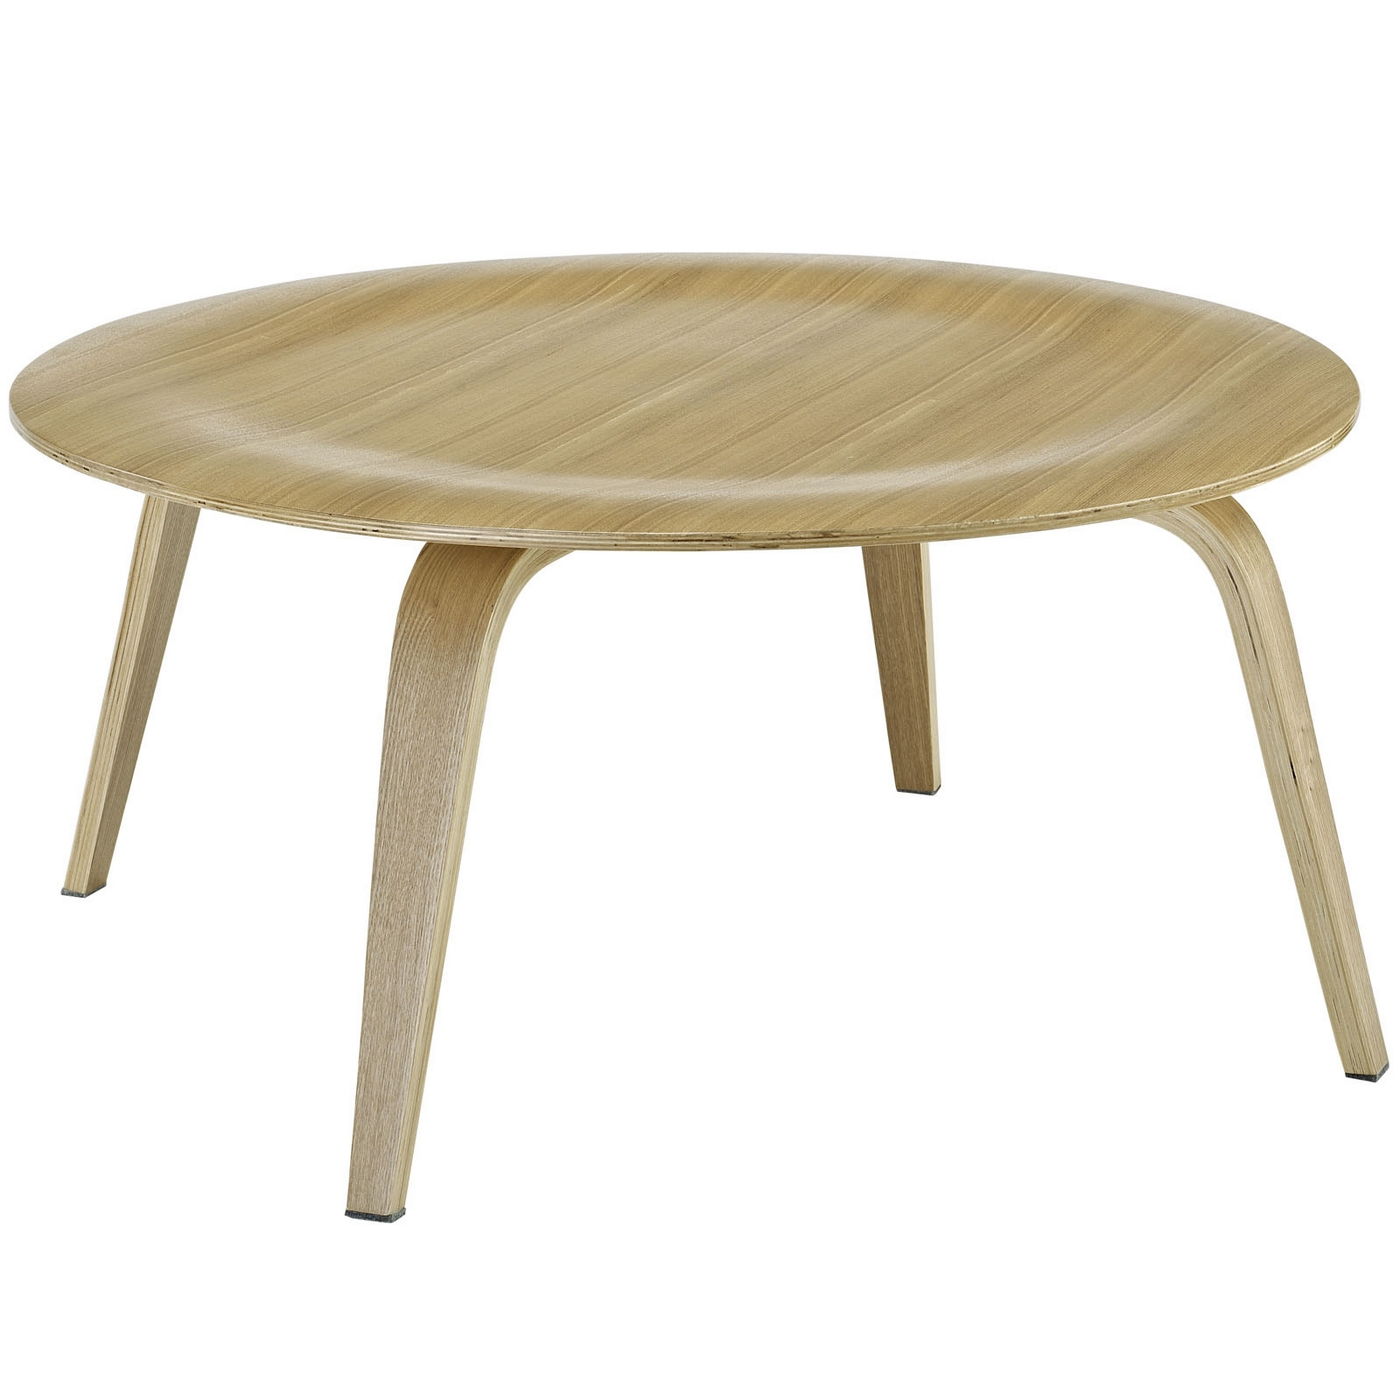 Modern Round Wooden Coffee Table 110: Plywood Modern Wood Grain Panel Round Coffee Table, Natural